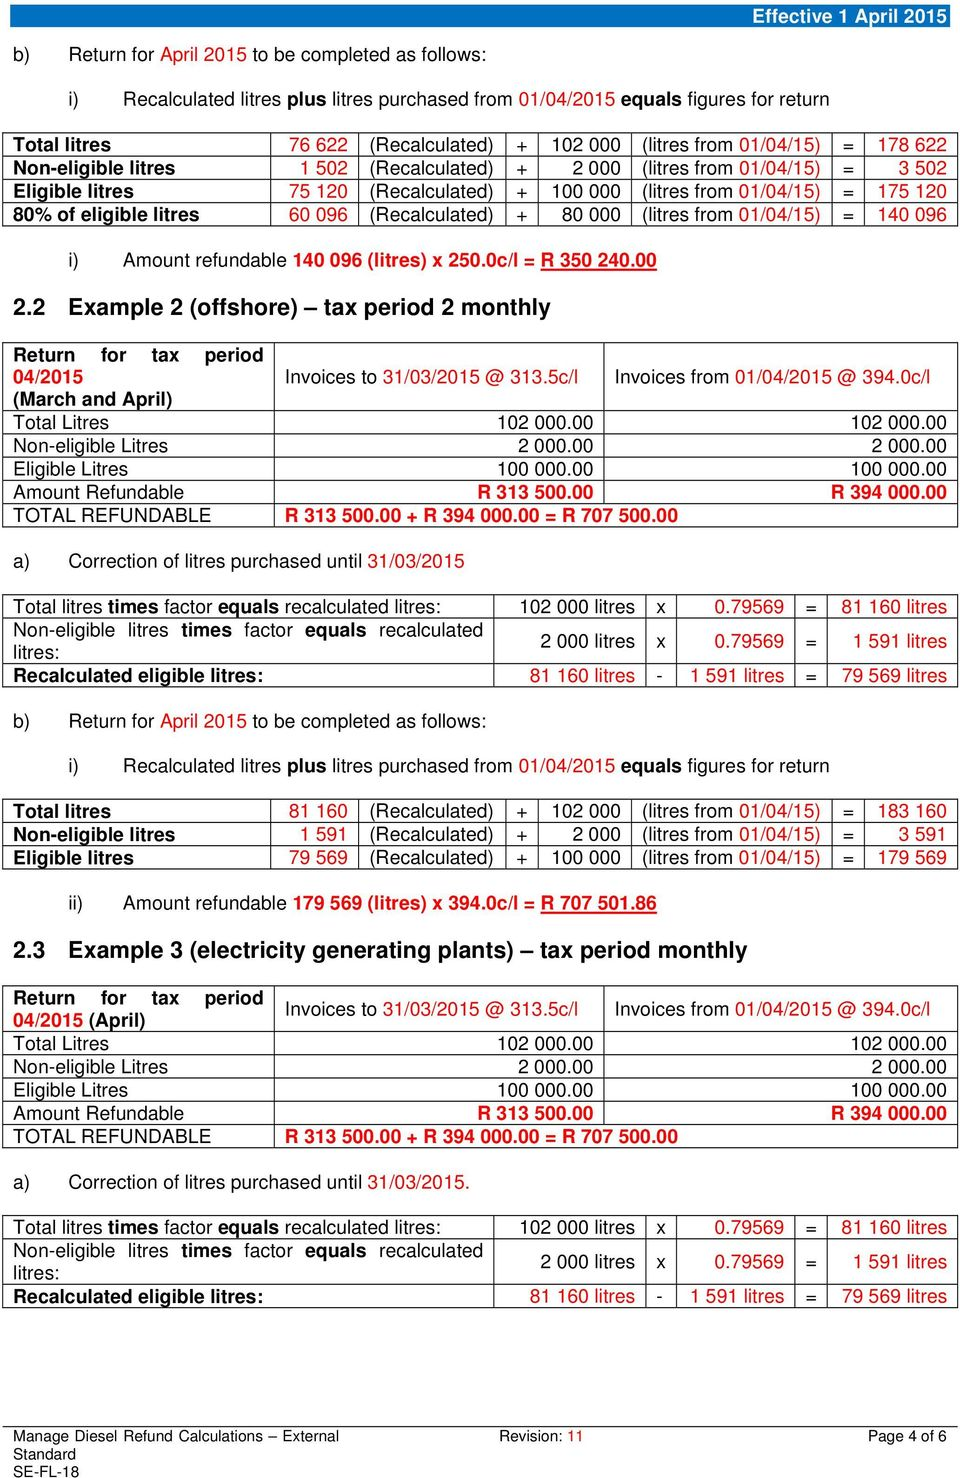 2 Example 2 (offshore) tax period 2 monthly 04/2015 Invoices to 31/03/2015 @ 313.5c/l Invoices from 01/04/2015 @ 394.0c/l (March and April) Amount Refundable R 313 500.00 R 394 000.